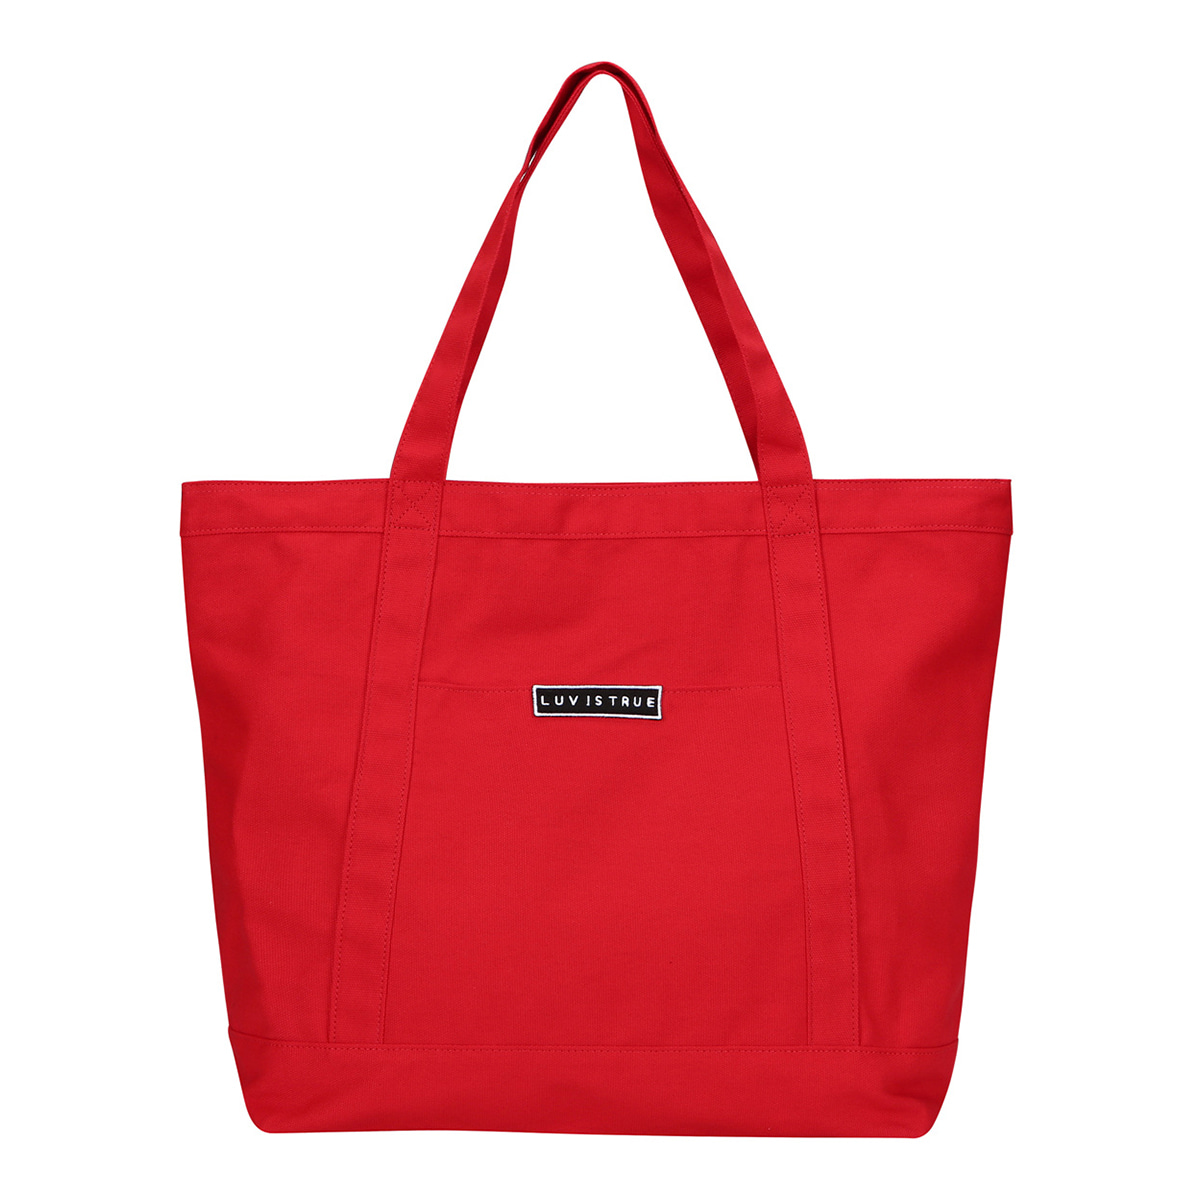 (UNISEX)BG LOGO TOTE BAG(RED)